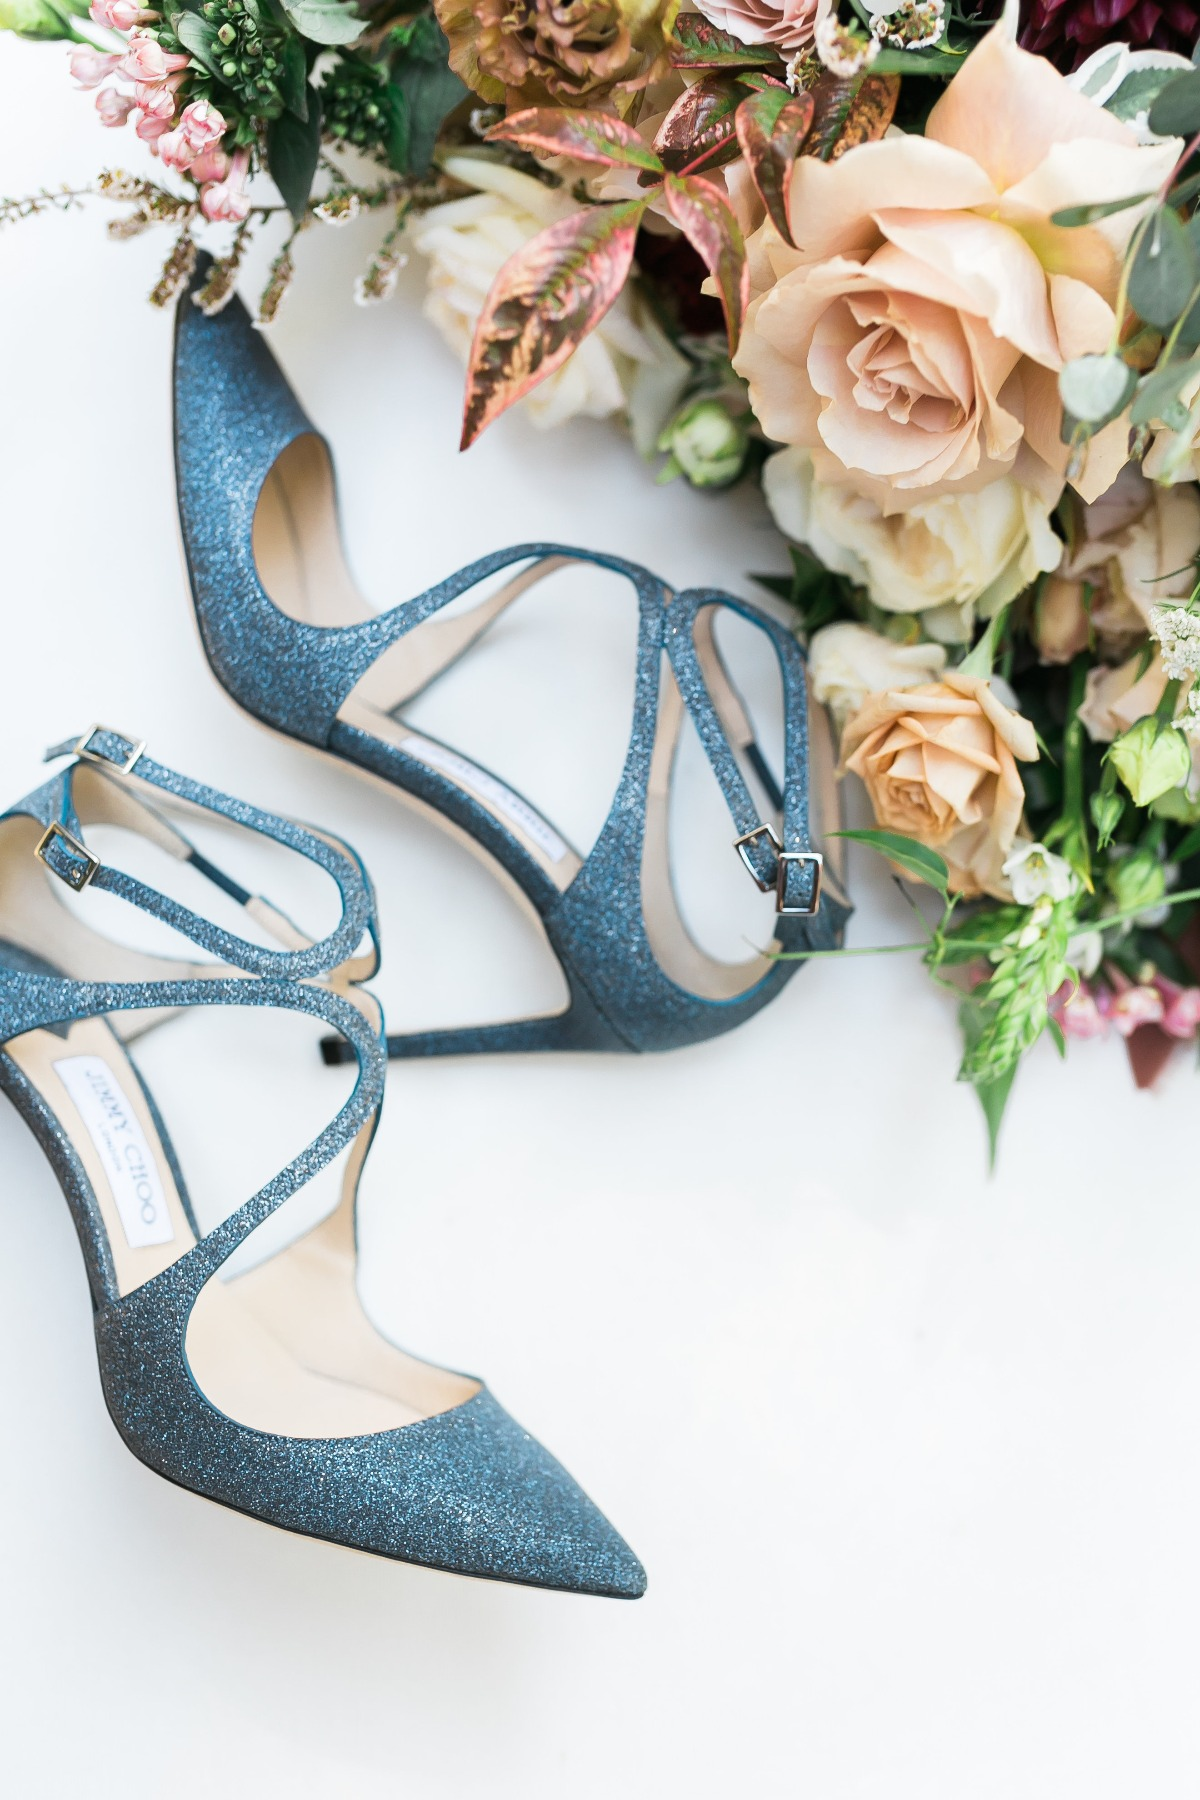 glittery blue wedding shoes